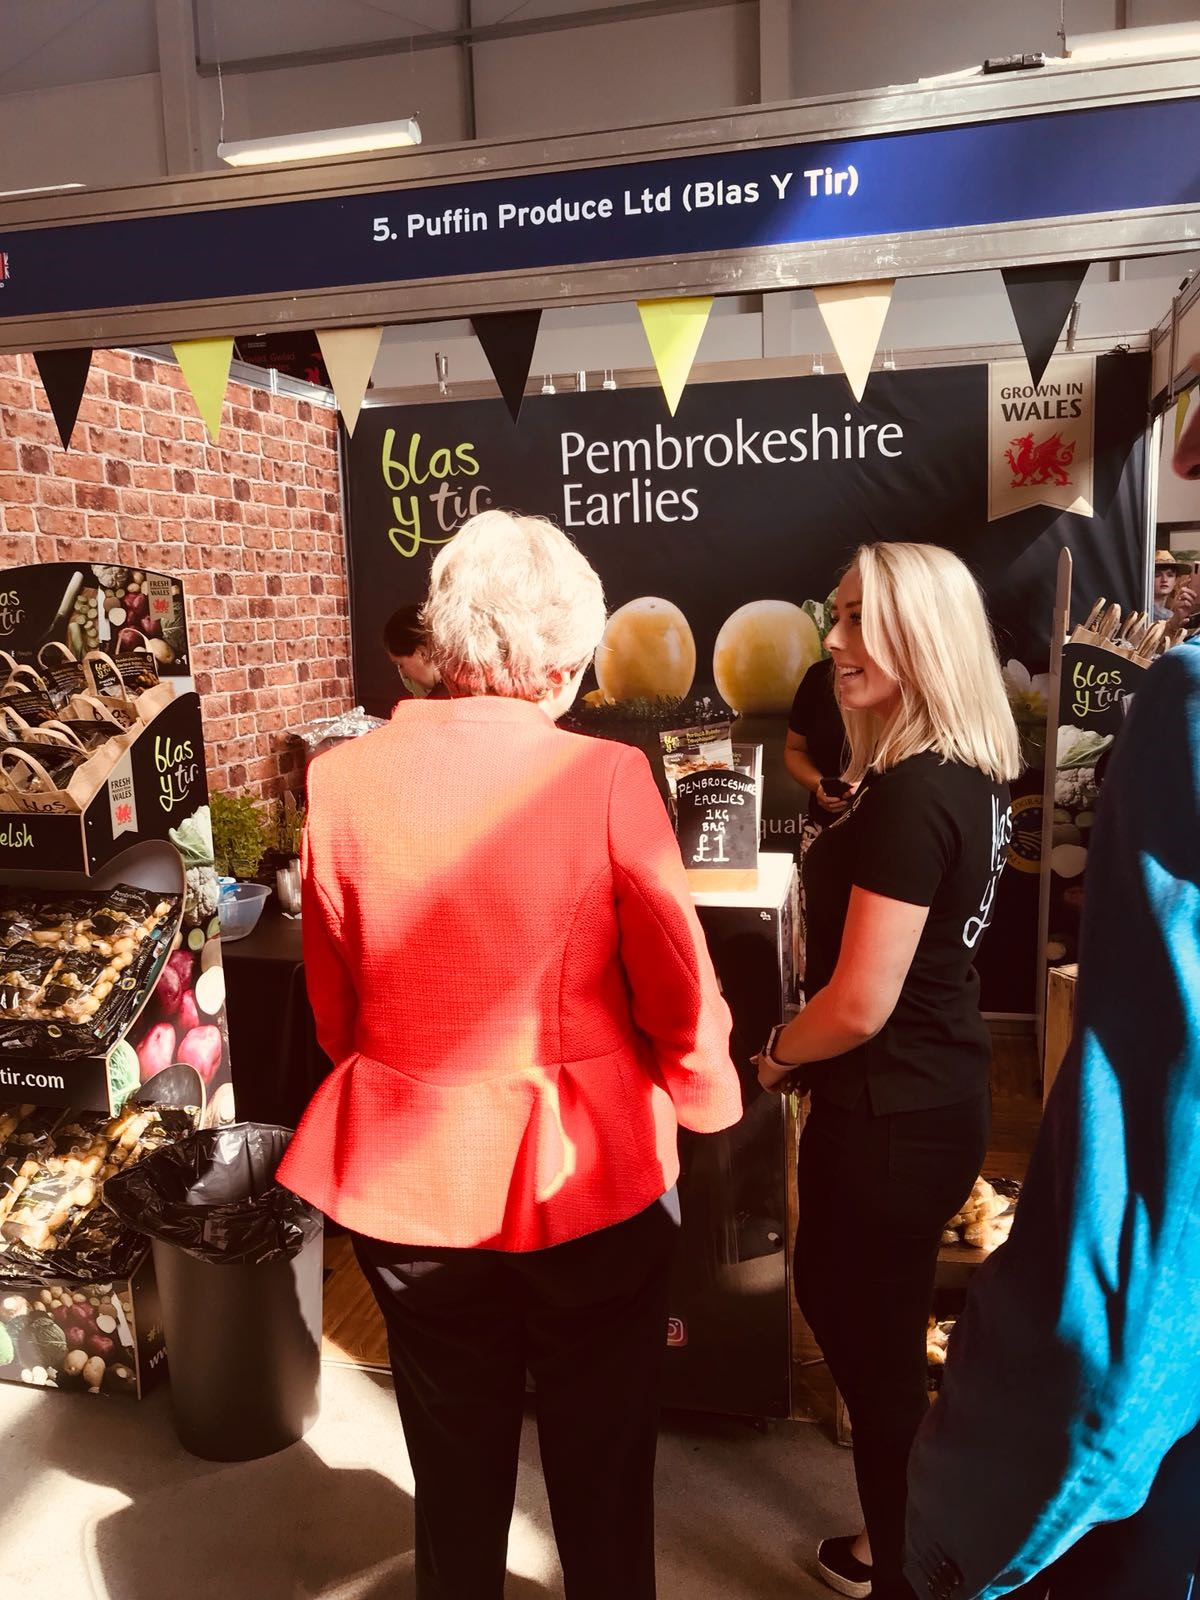 Theresa May visits the Blas y Tir Stand at the Royal Welsh Show 2018